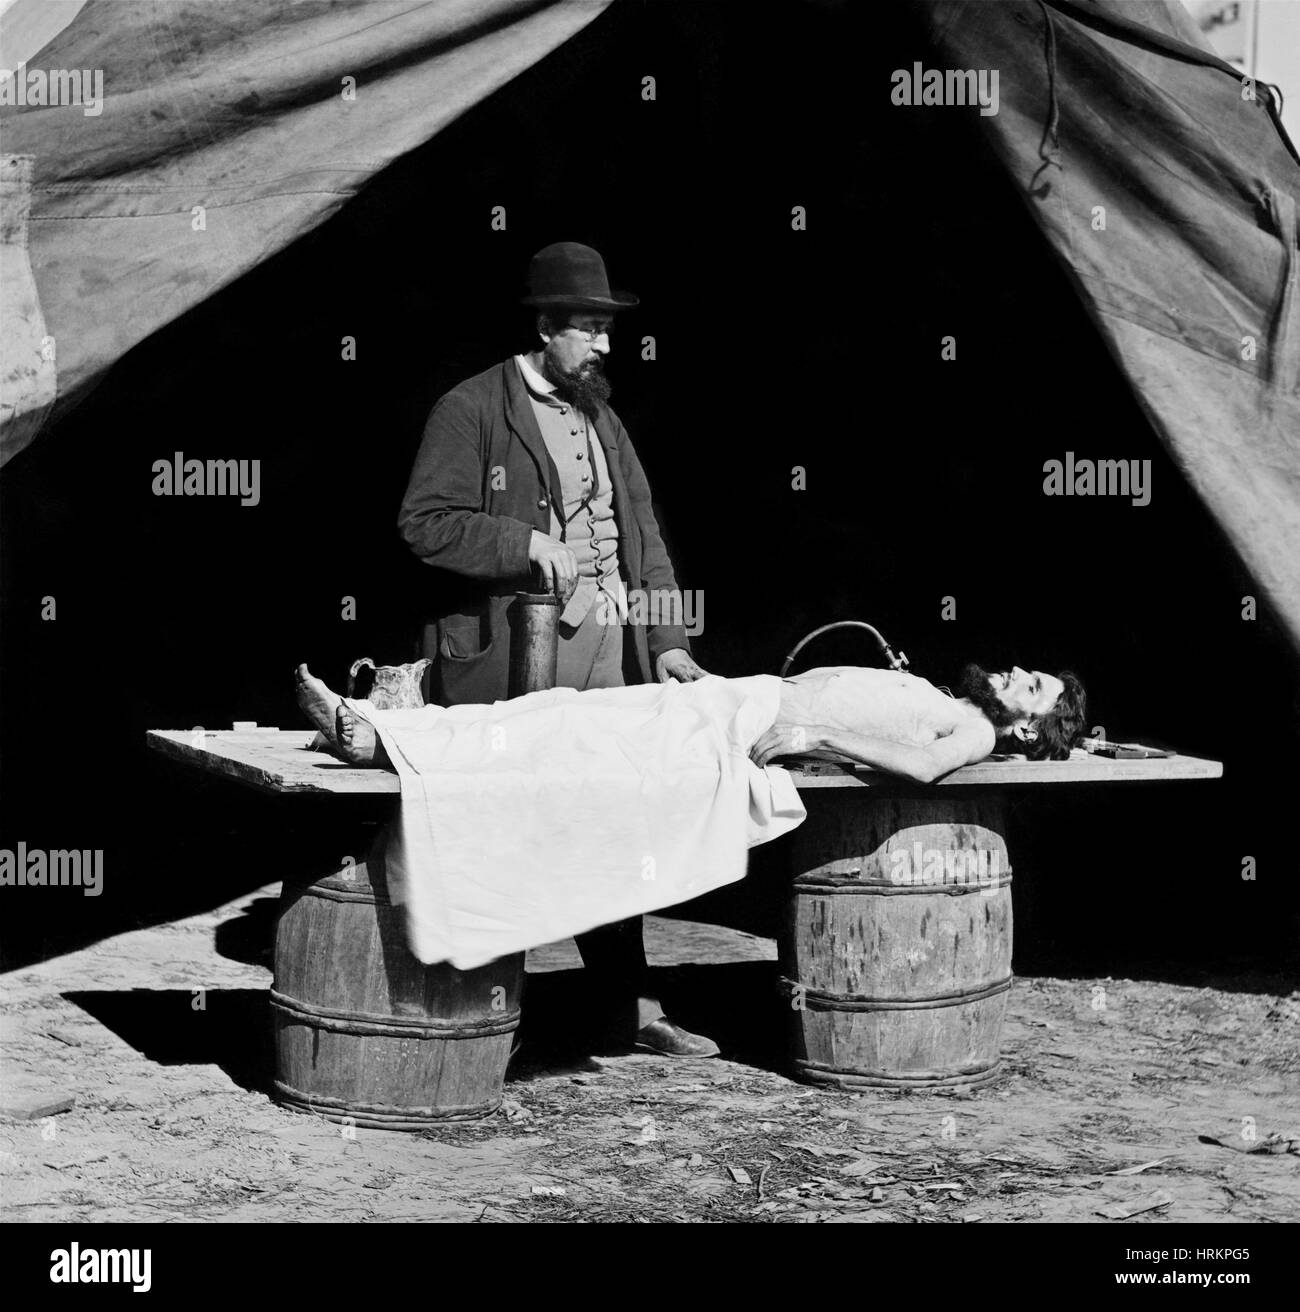 Civil War Embalming - Stock Image